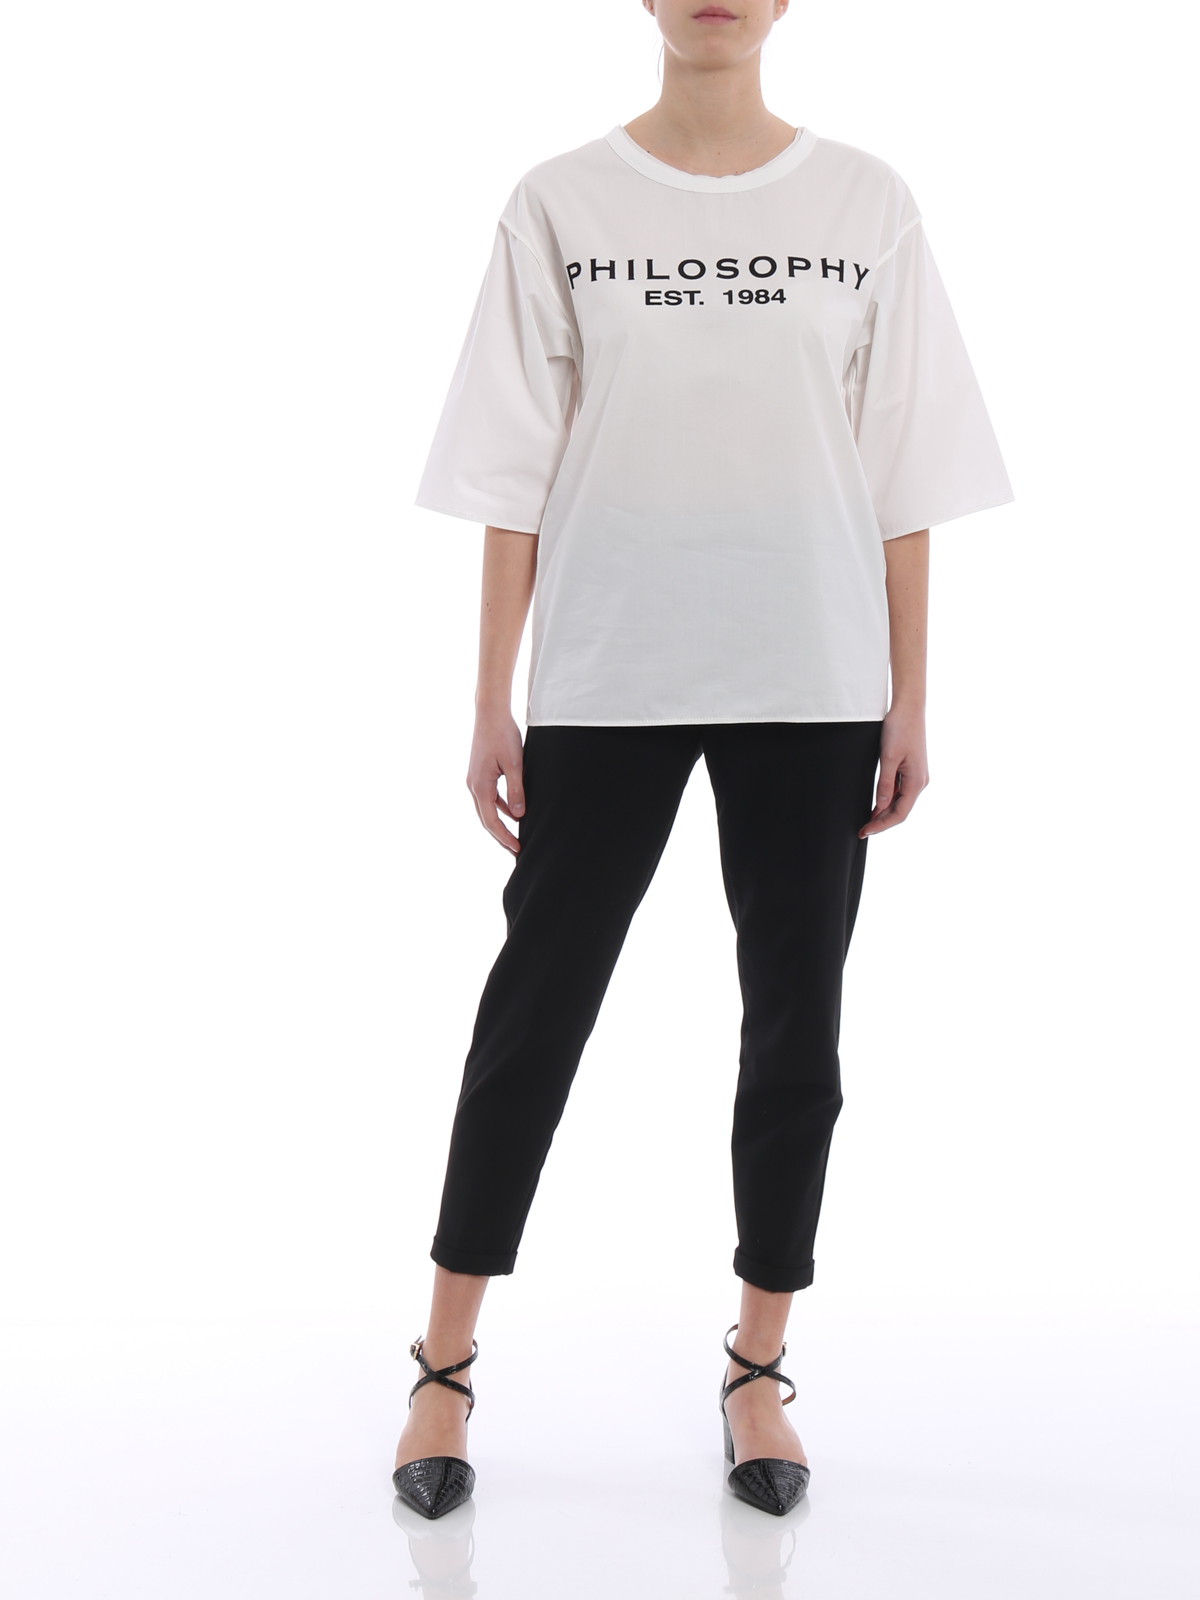 Buy Cheap Websites Poplin t-shirt with logo Philosophy di Lorenzo Serafini Outlet Store Locations Pre Order Cheap Price upn9Fhj9